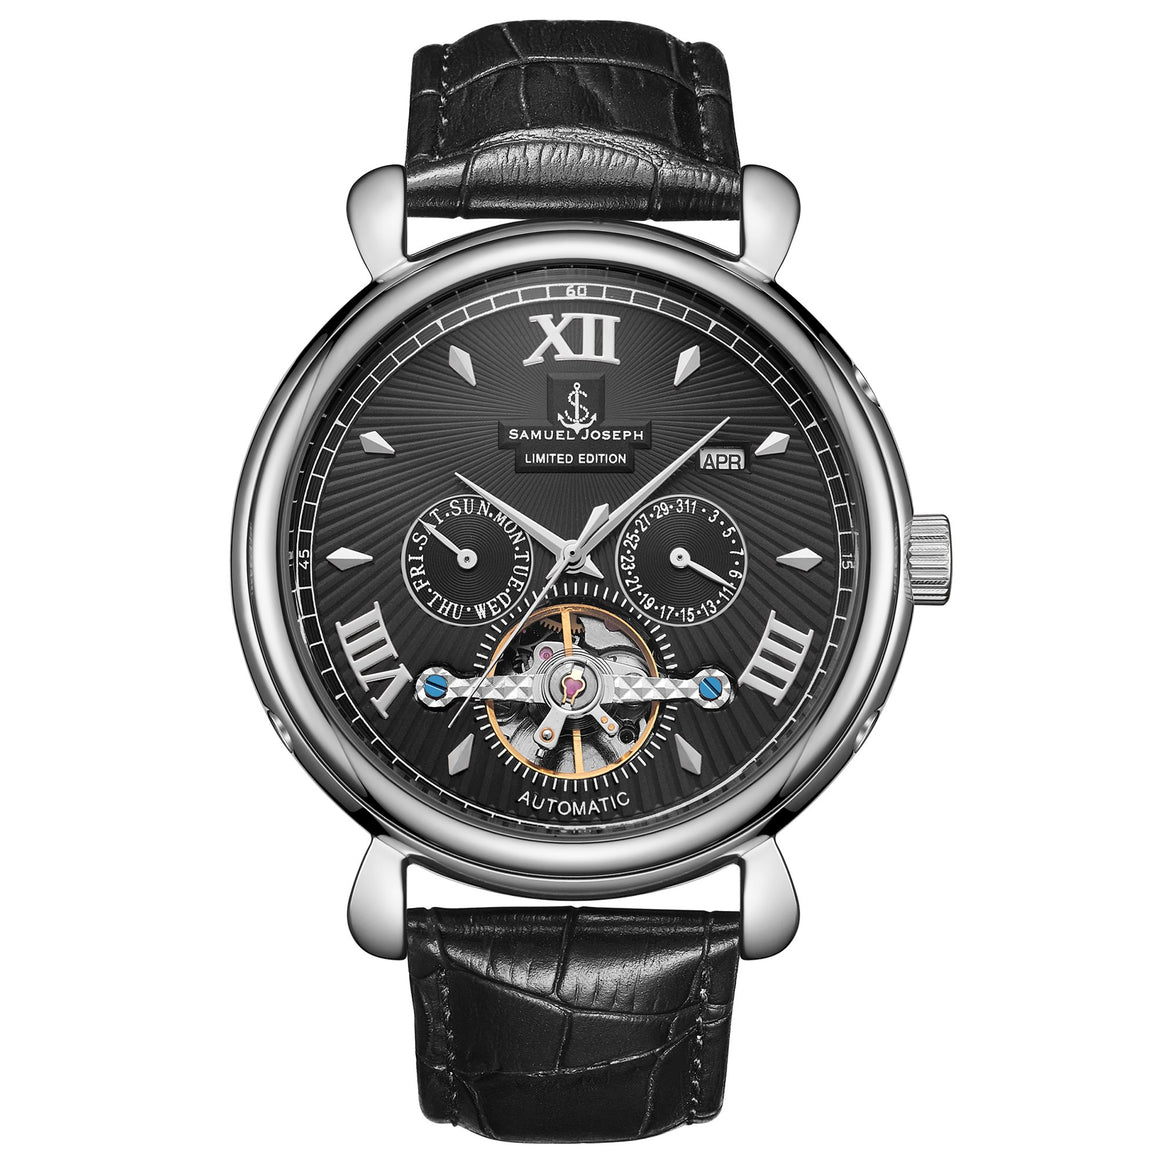 Samuel Joseph black Automatic Luxury Mens Watch